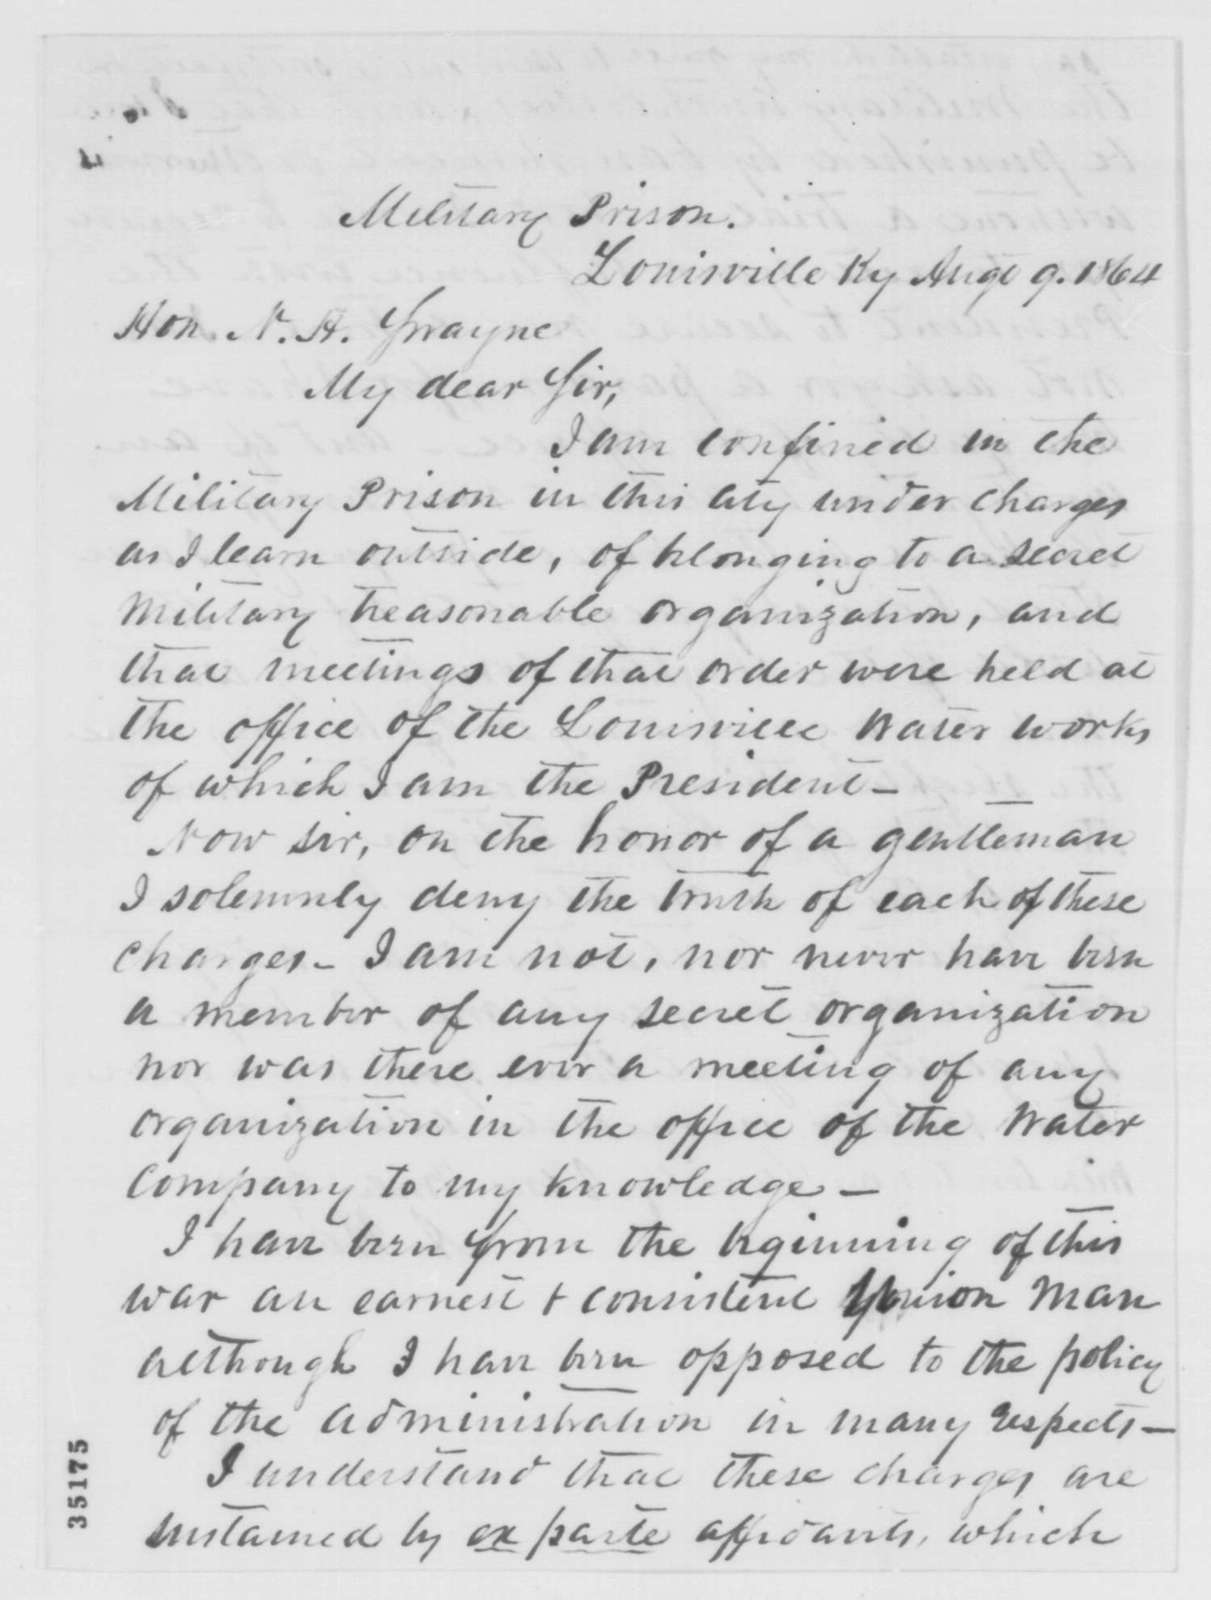 A. Harris to Noah H. Swayne, Tuesday, August 09, 1864  (Seeks release from prison)